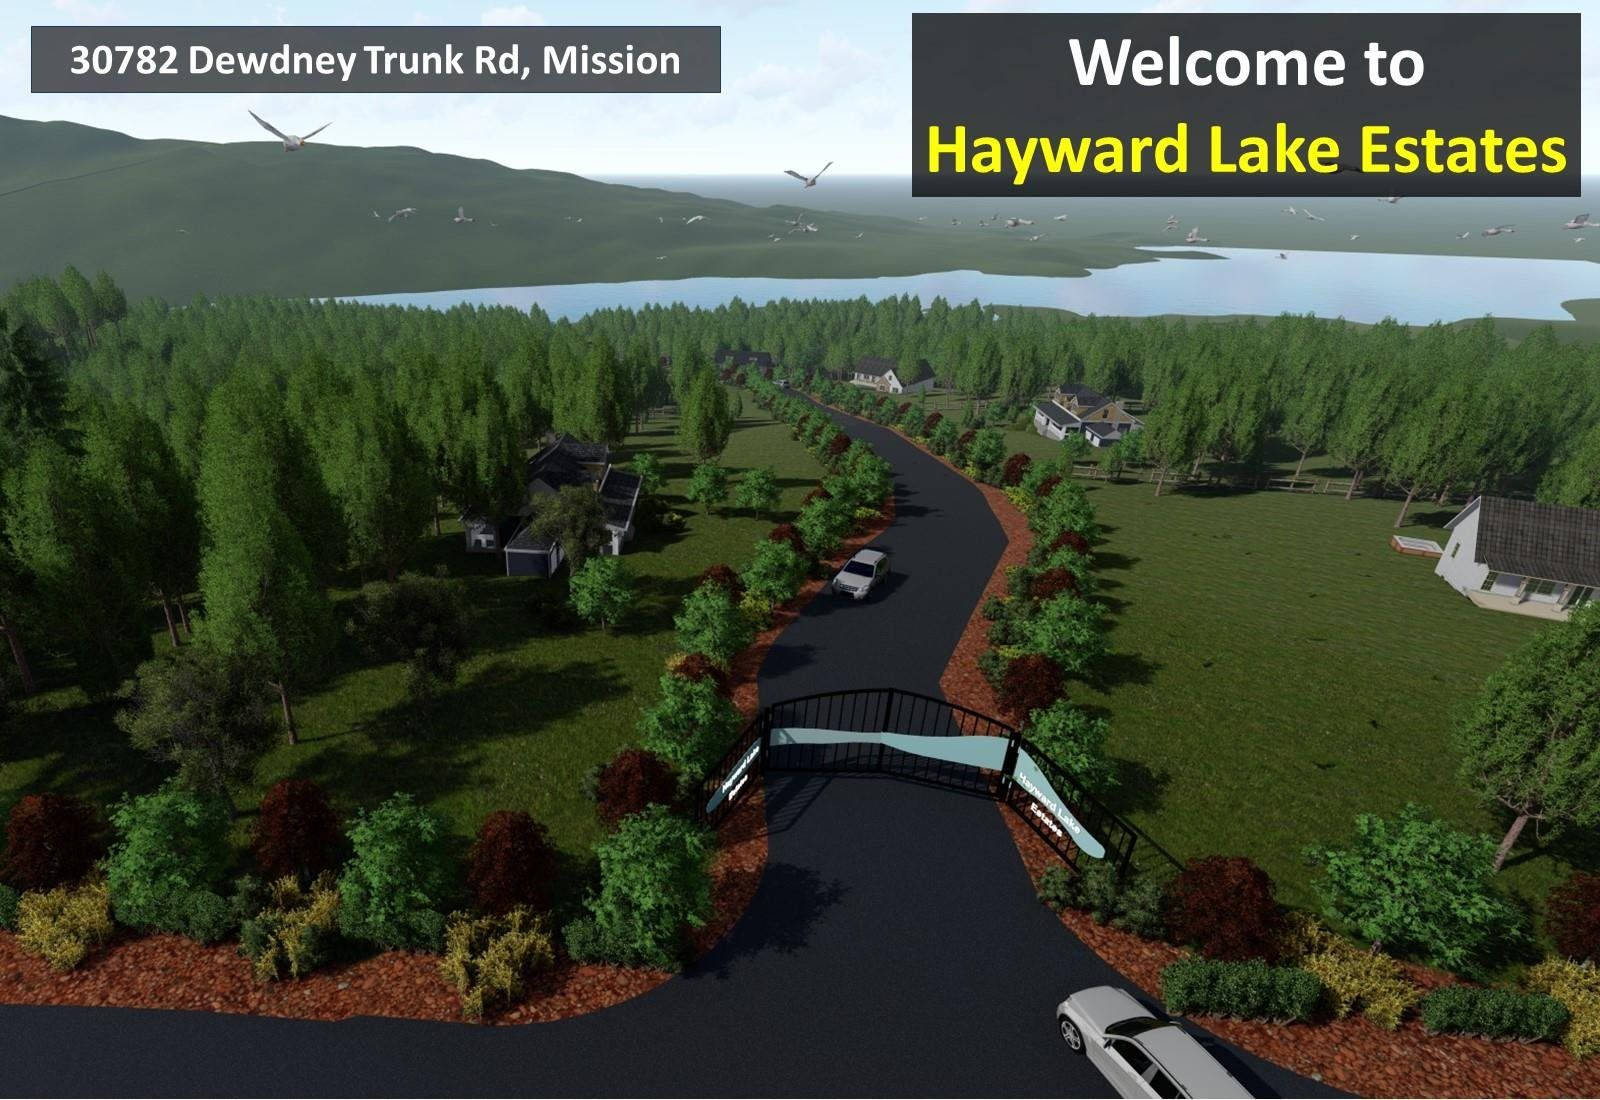 """Main Photo: 30782 DEWDNEY TRUNK Road in Mission: Stave Falls Land for sale in """"HAYWARD LAKE ESTATES INC."""" : MLS®# R2607109"""